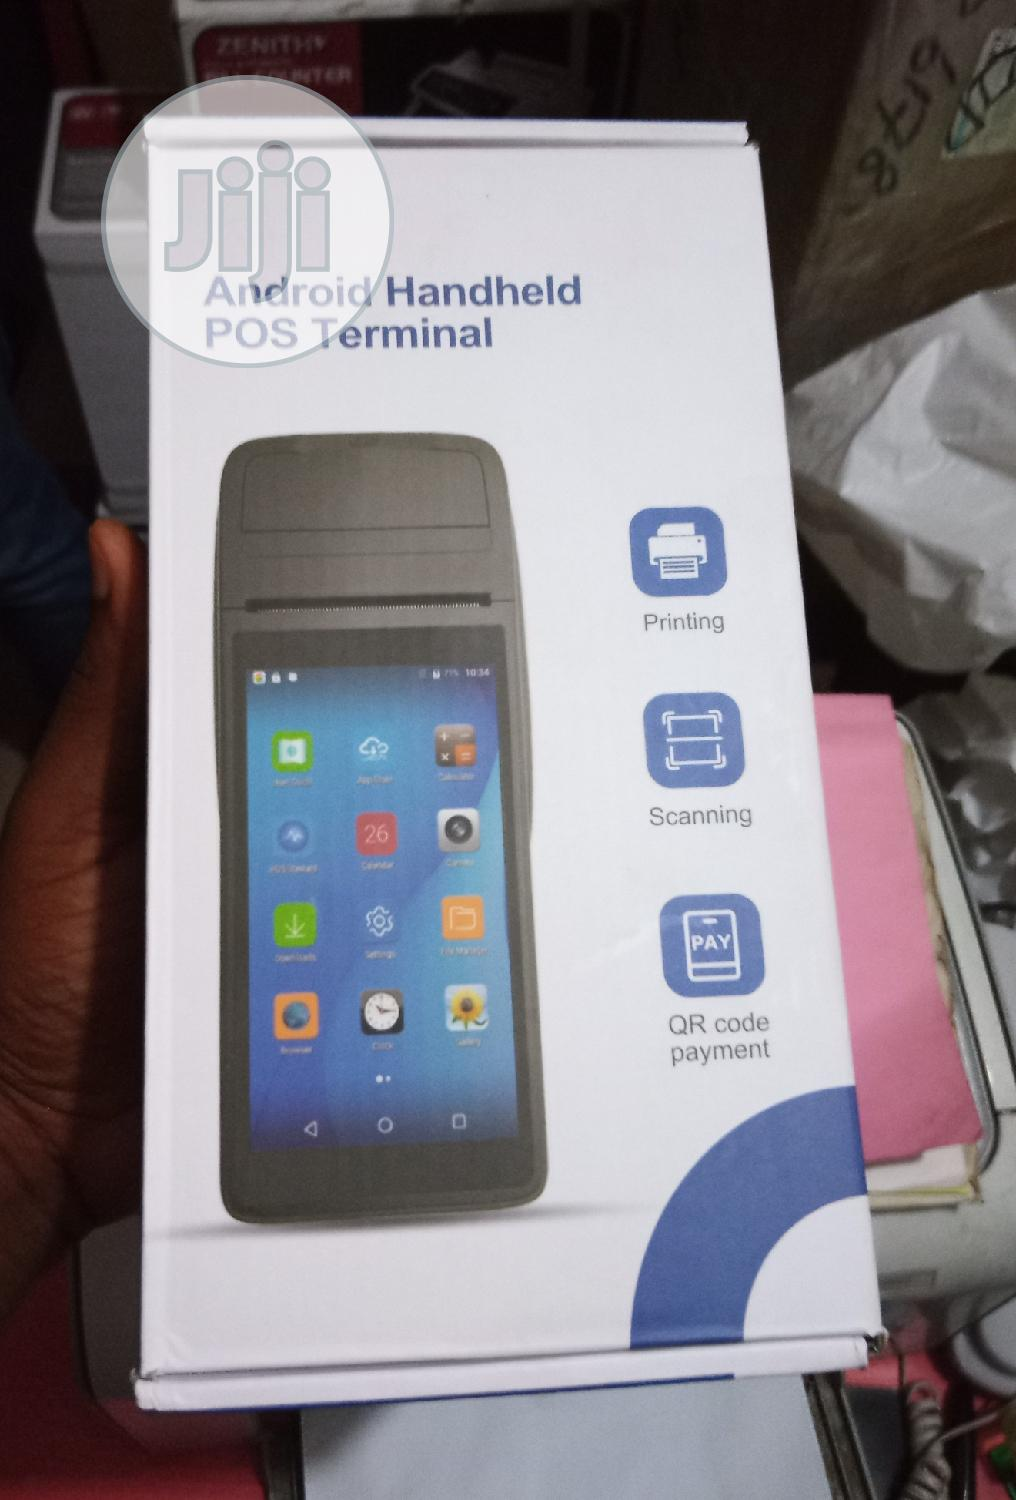 Brand New Android Pos Payment Terminal | Store Equipment for sale in Ikeja, Lagos State, Nigeria